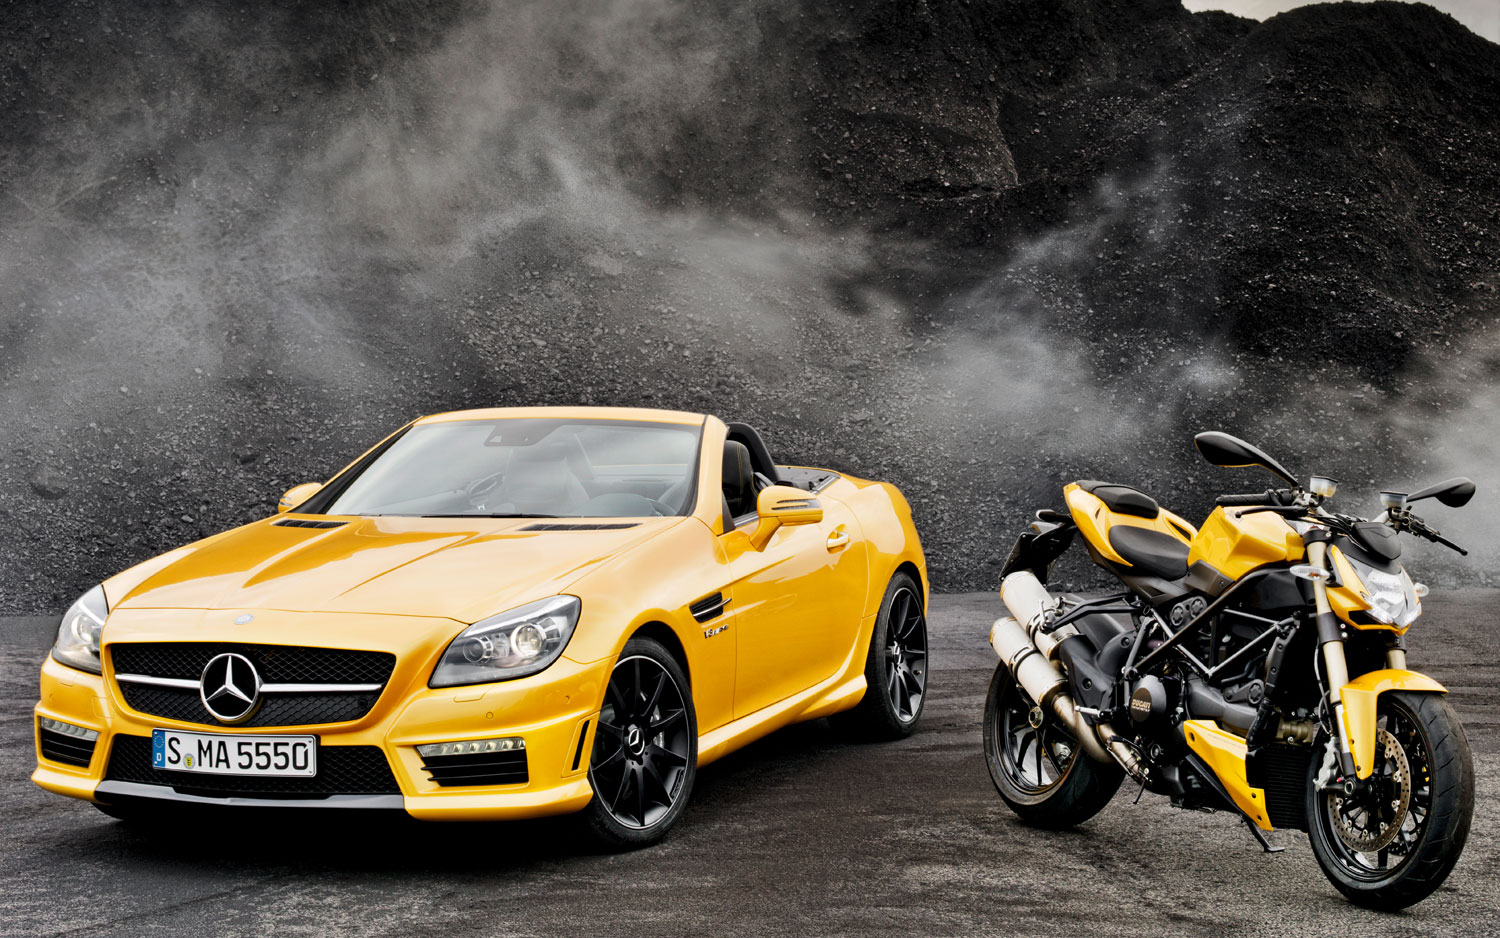 2012 Mercedes Benz SLK55 AMG Ducati Concept Front View With Bike1